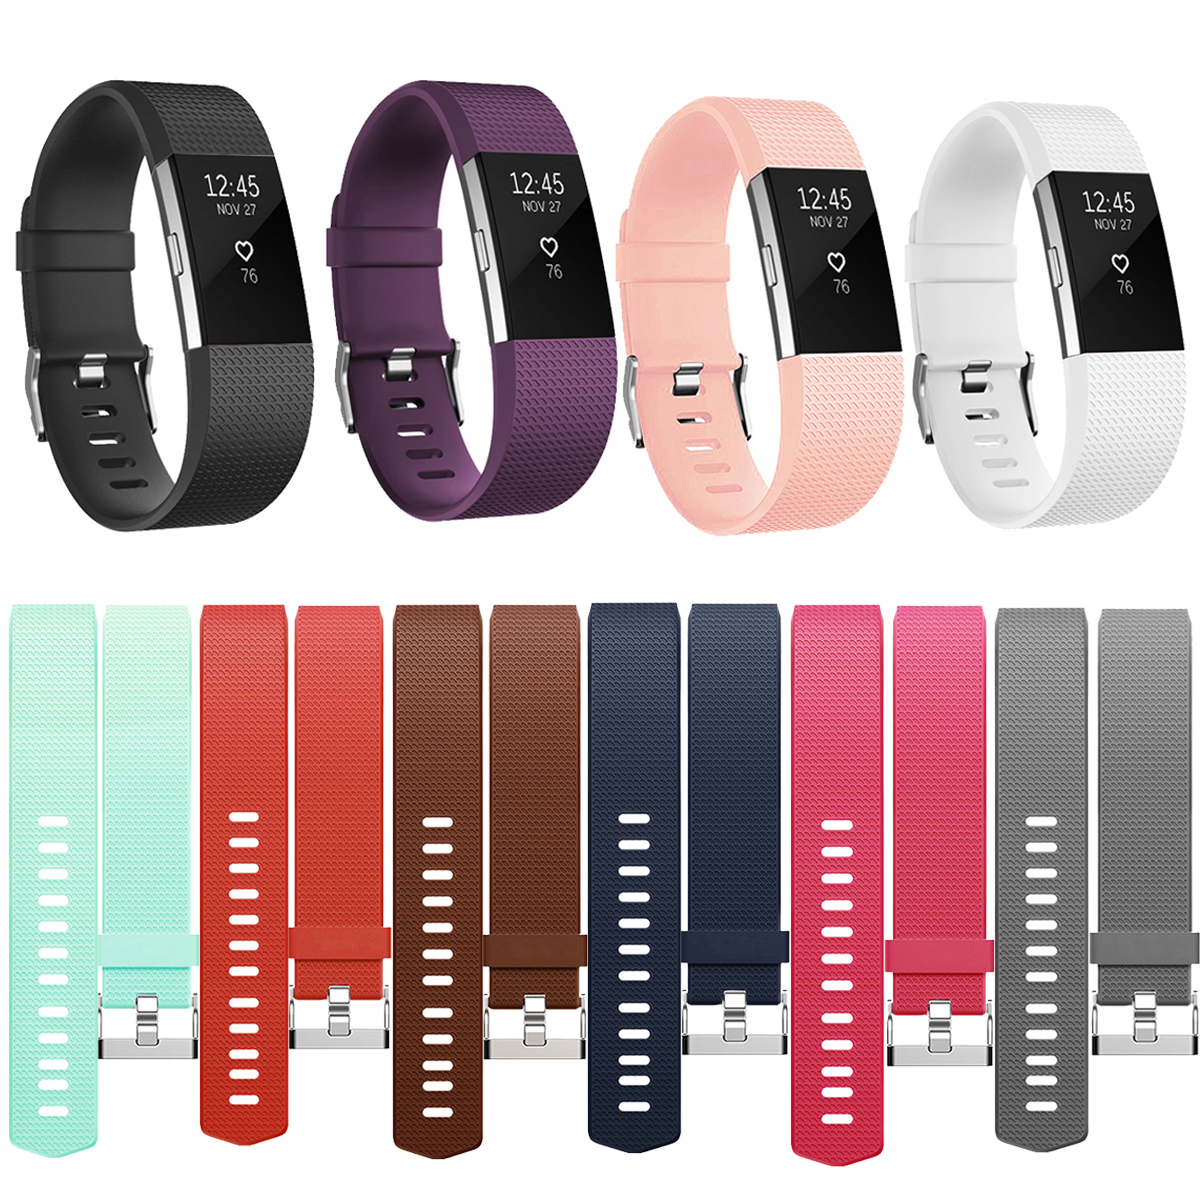 Fitbit wristband replacements